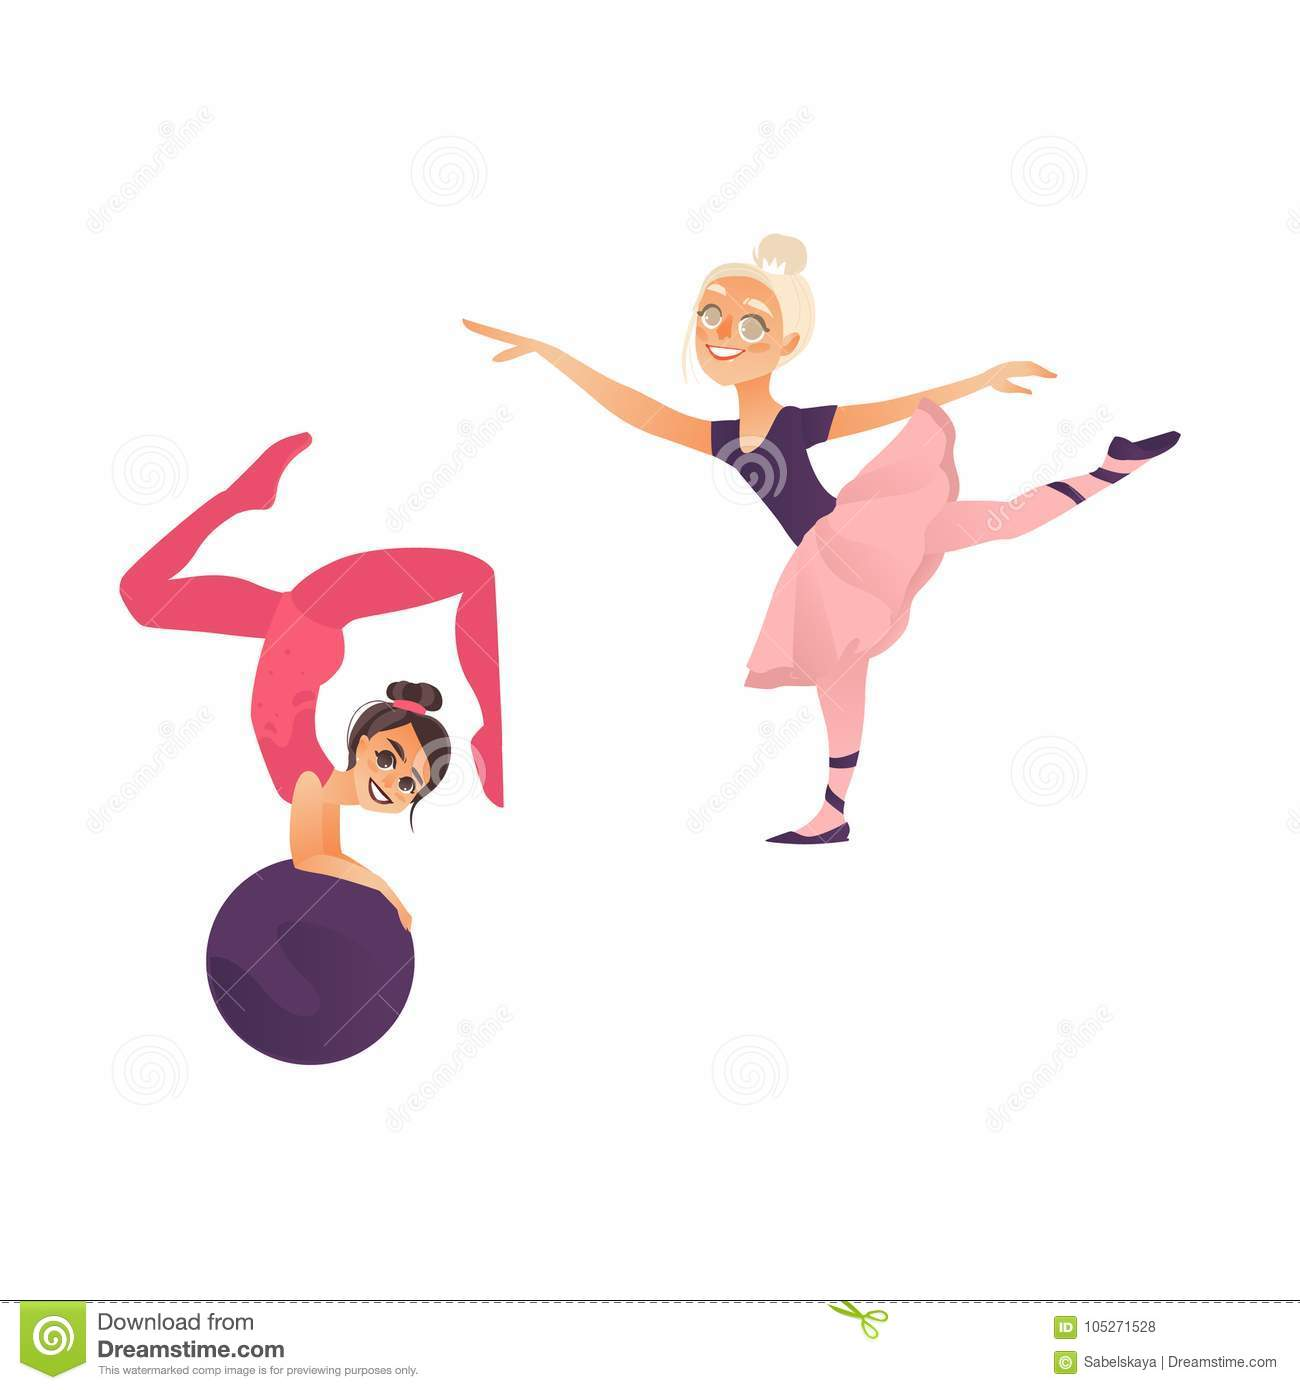 Real serbian teen girl nackt